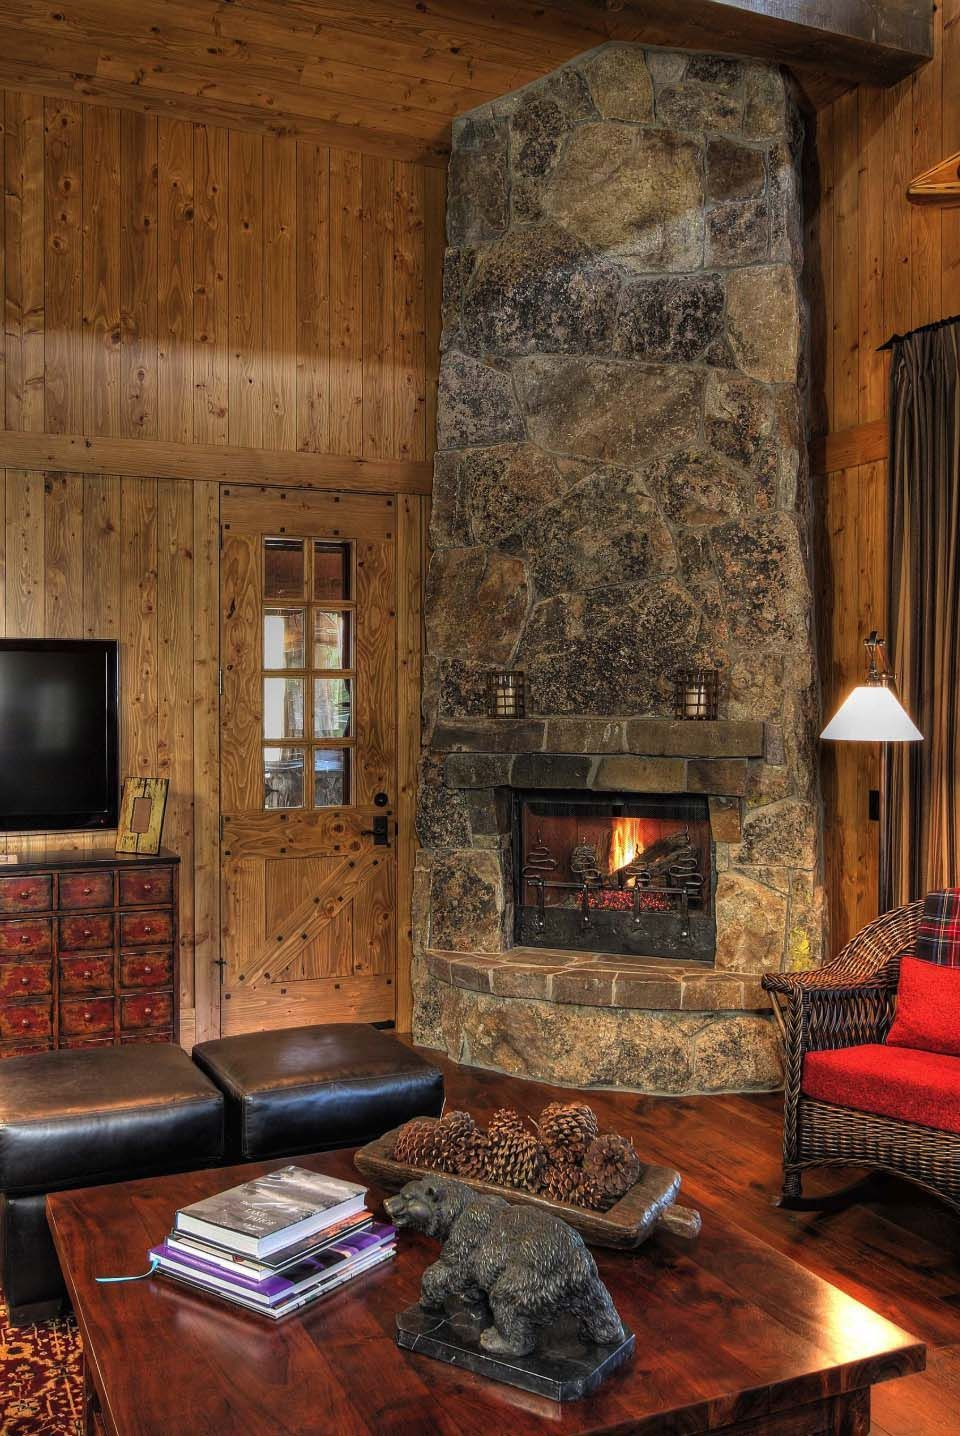 Cute rustic fireplace design ideas 09